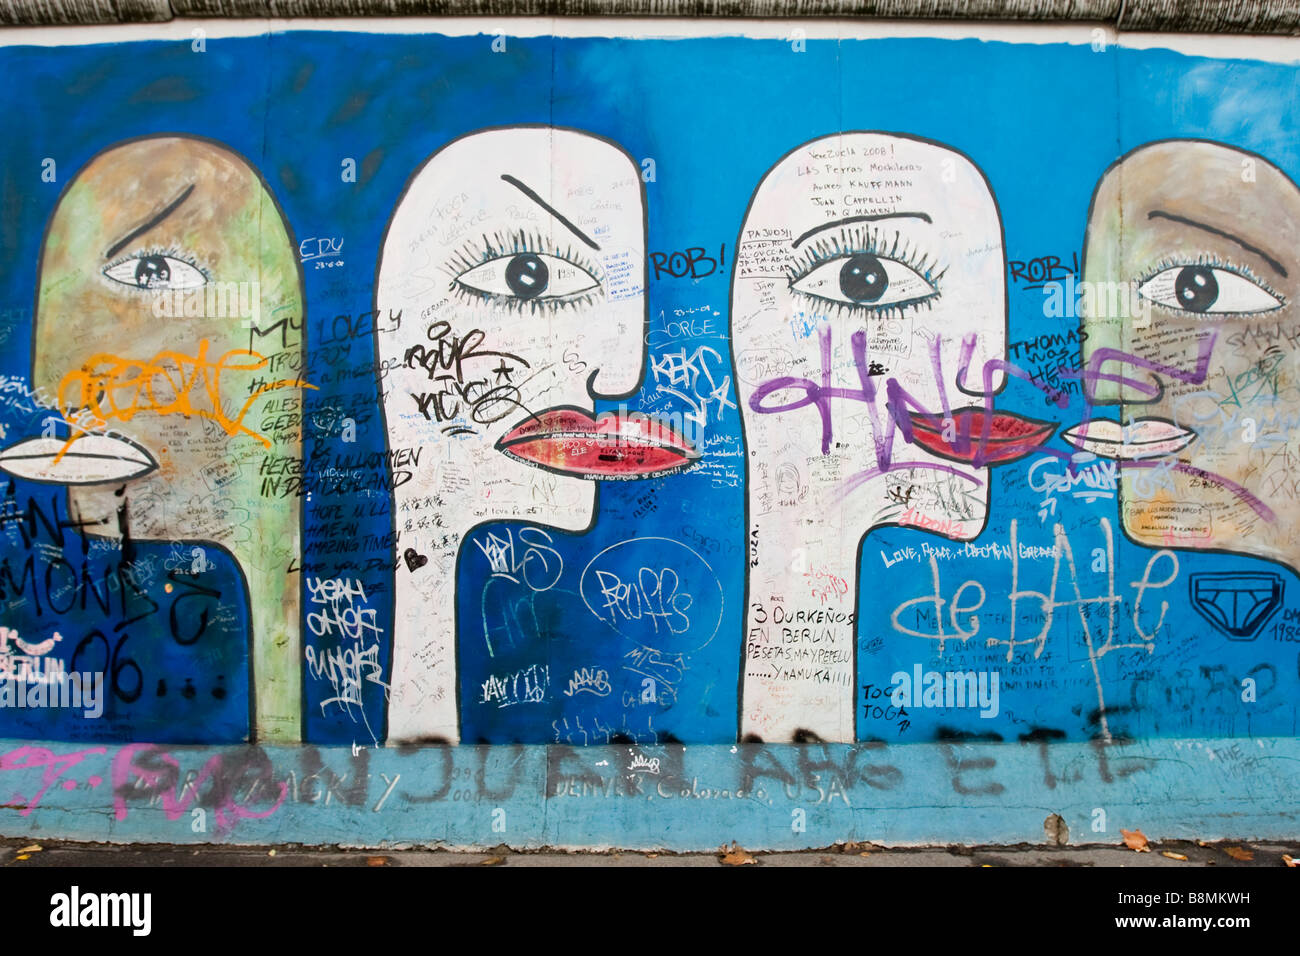 Graffi at the East side gallery of the Berlin wall - Stock Image